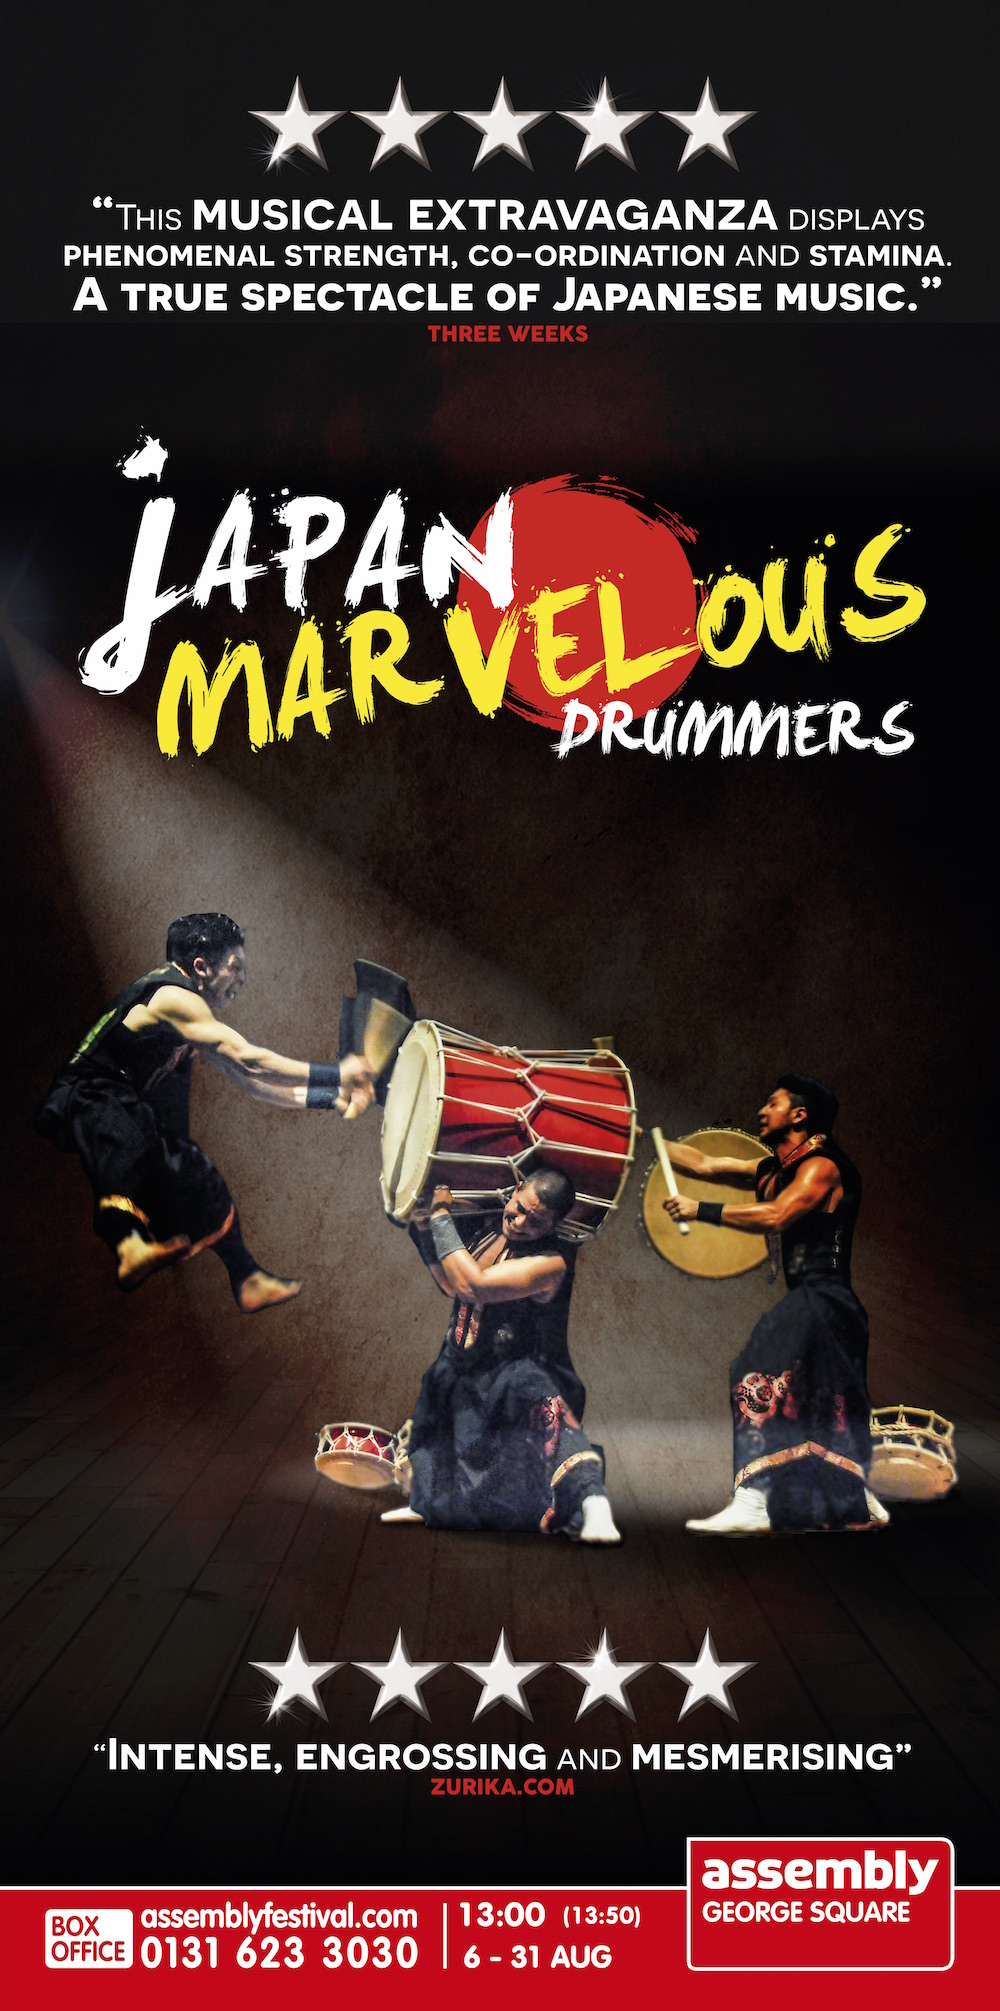 FT40 & FT22 Japan Marvellous Drummers copy.jpg